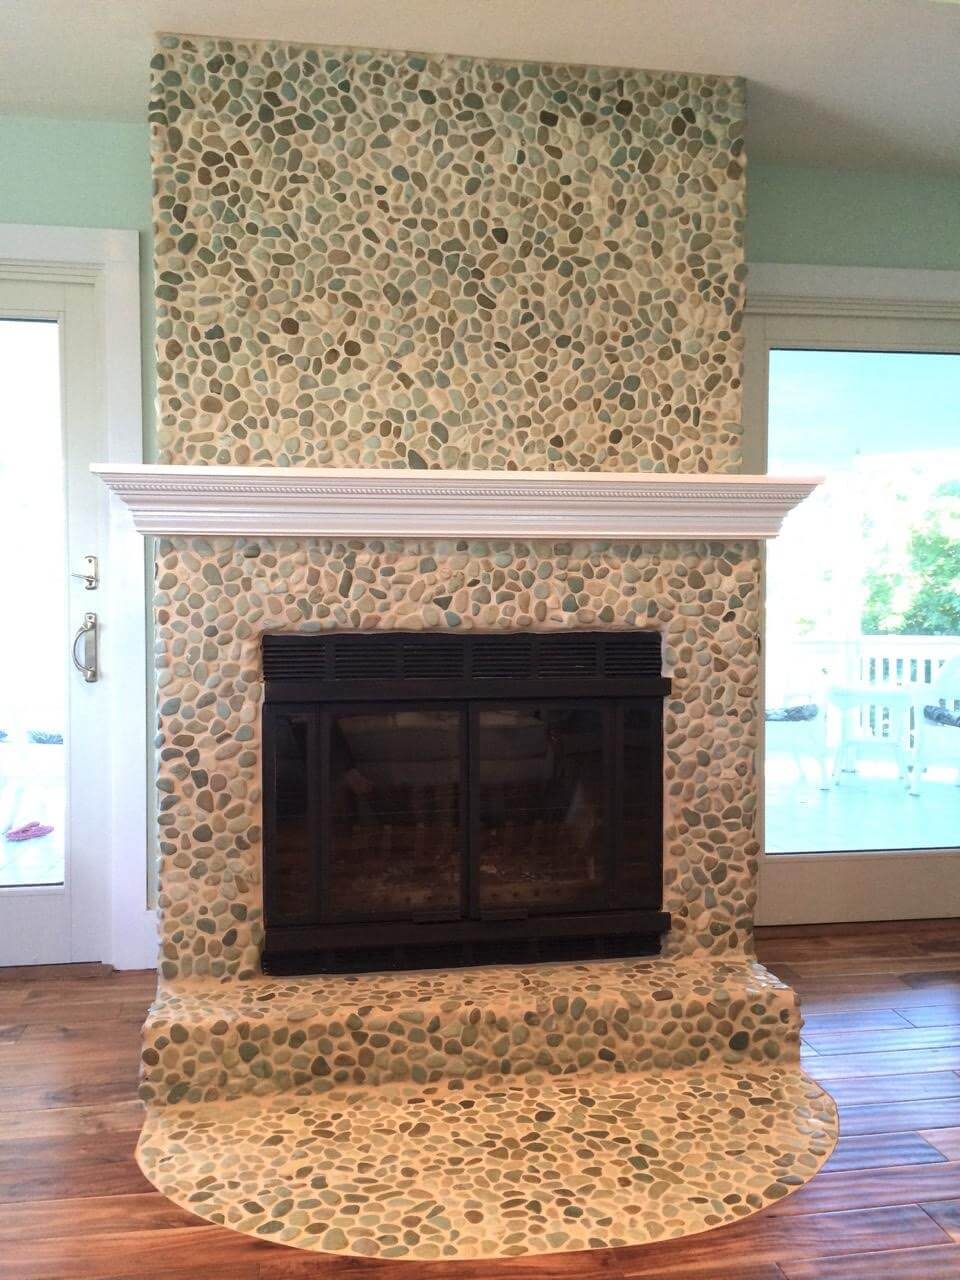 19 stylish fireplace tile ideas for your fireplace surround - Stone fireplace surround ideas ...